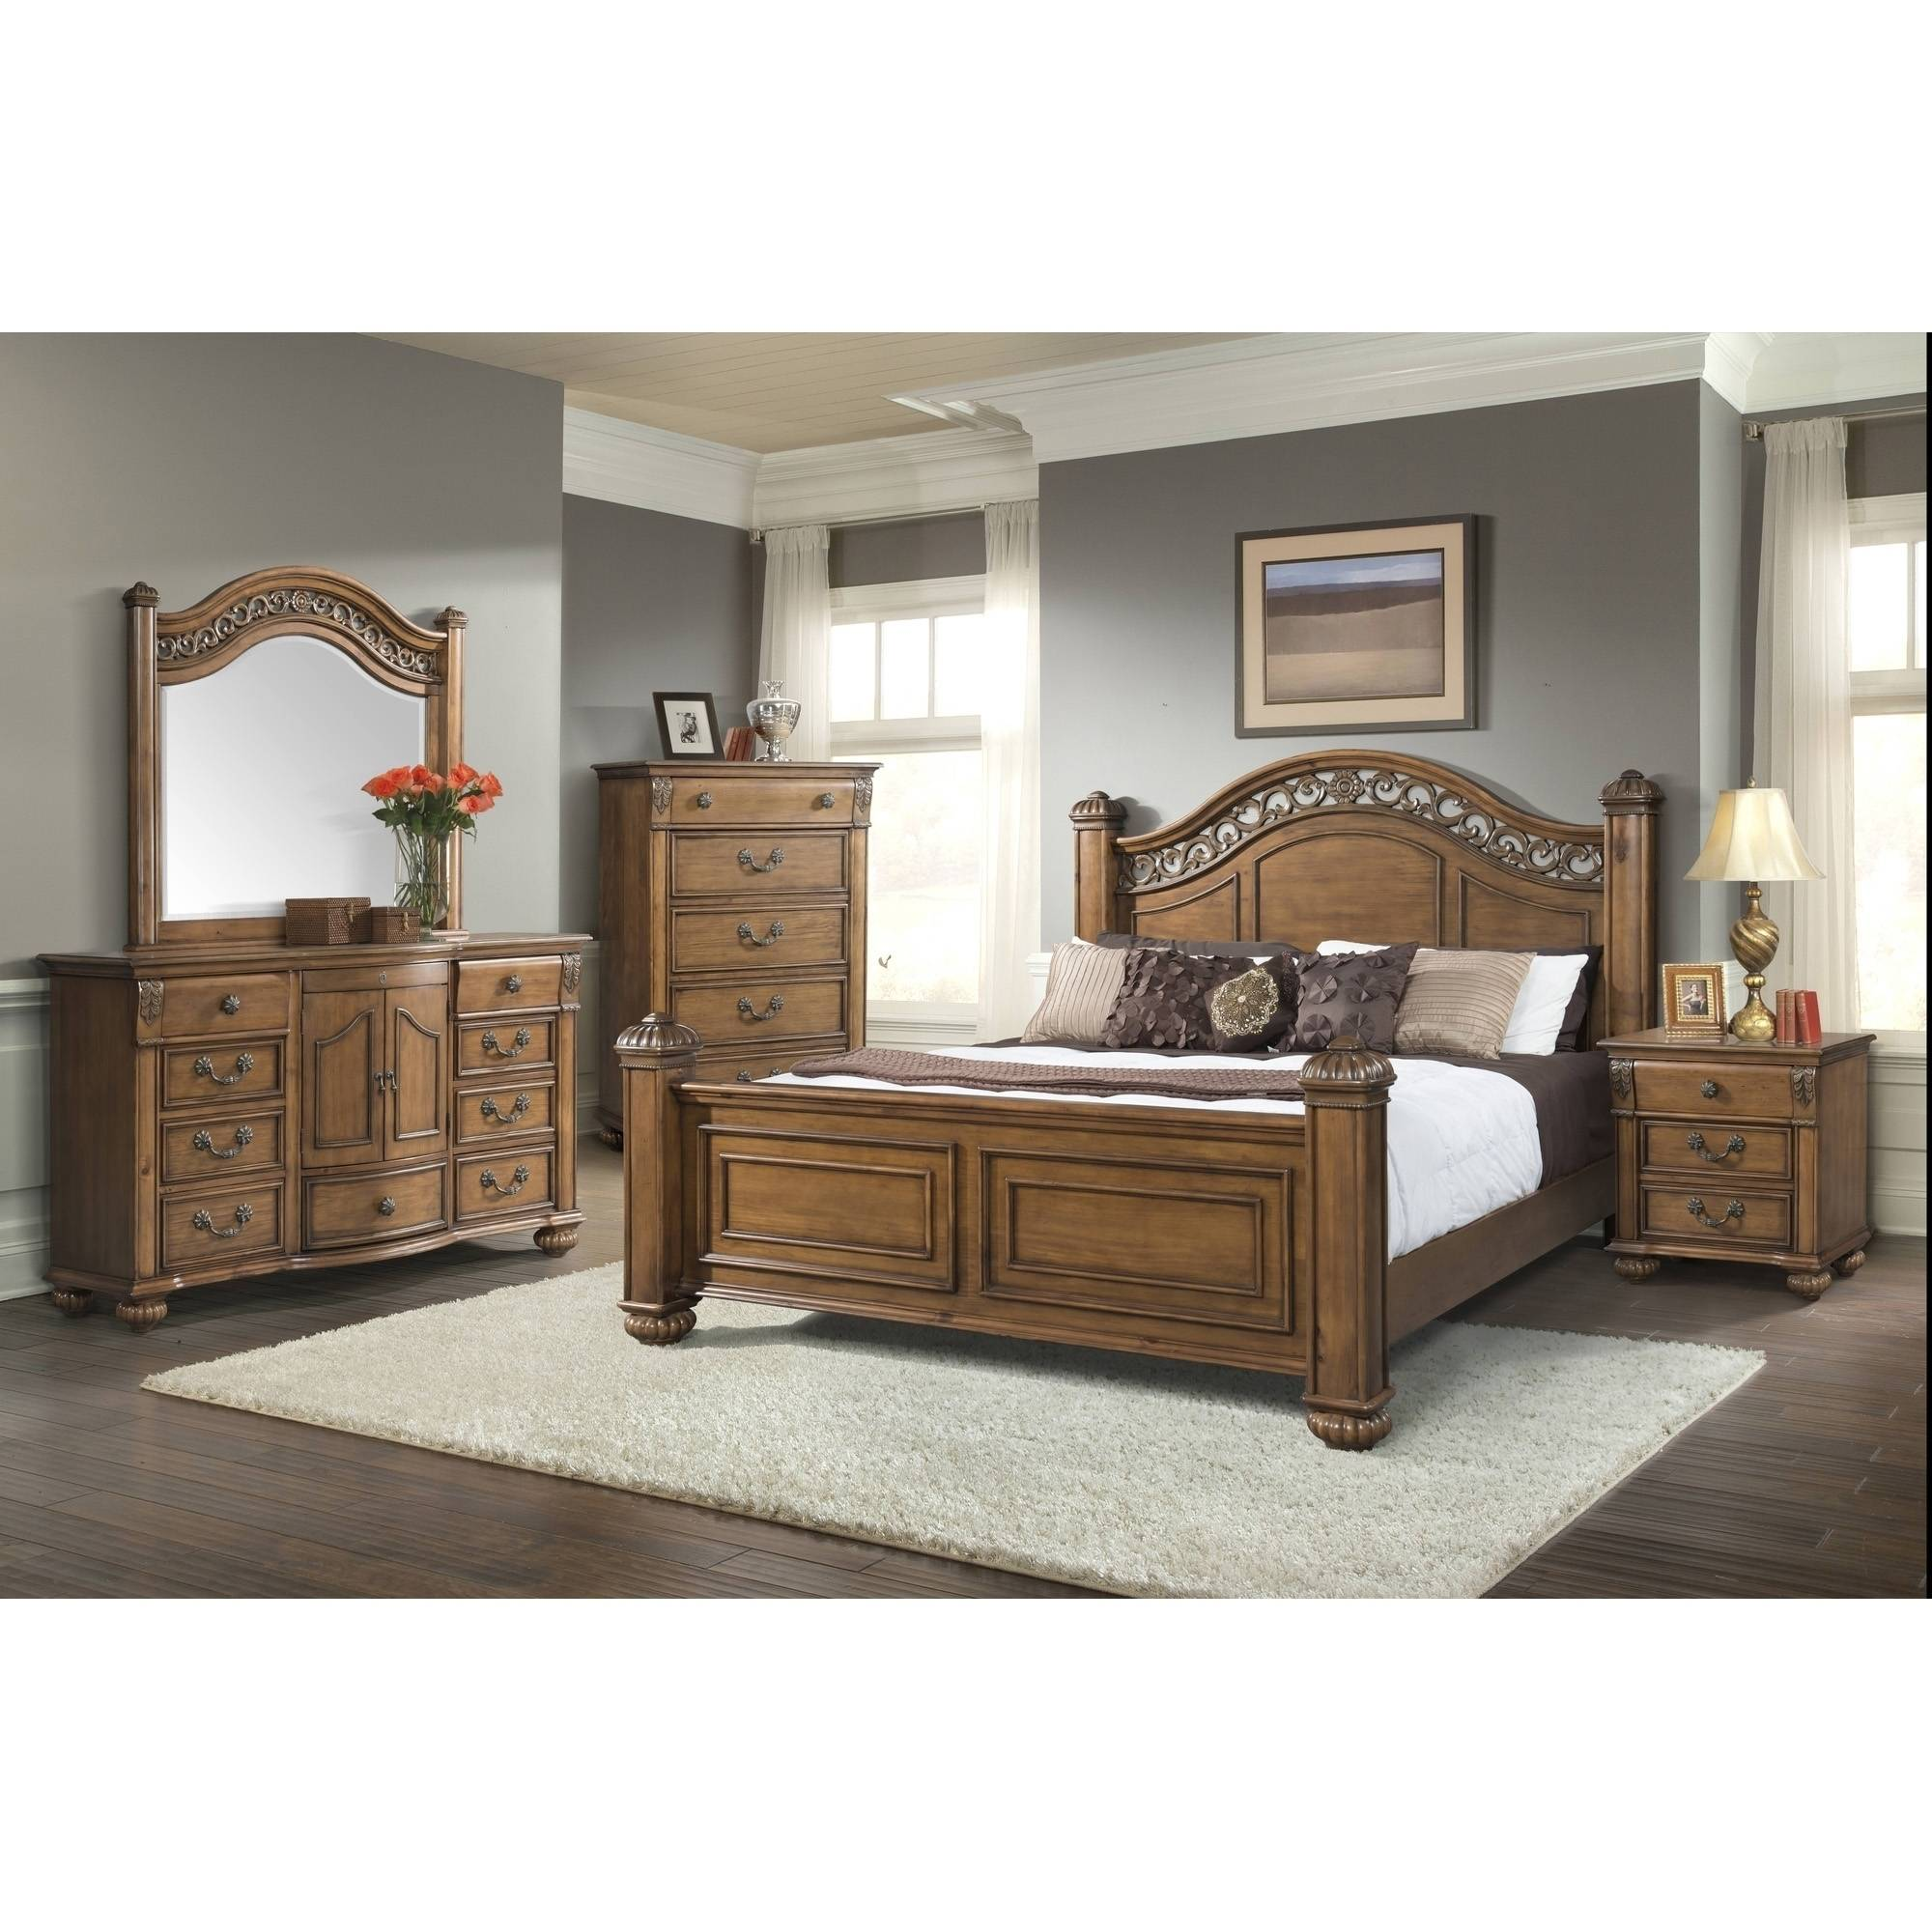 Picket House Furnishings Barrow Poster Bedroom Set, Multiple Sizes and Configurations